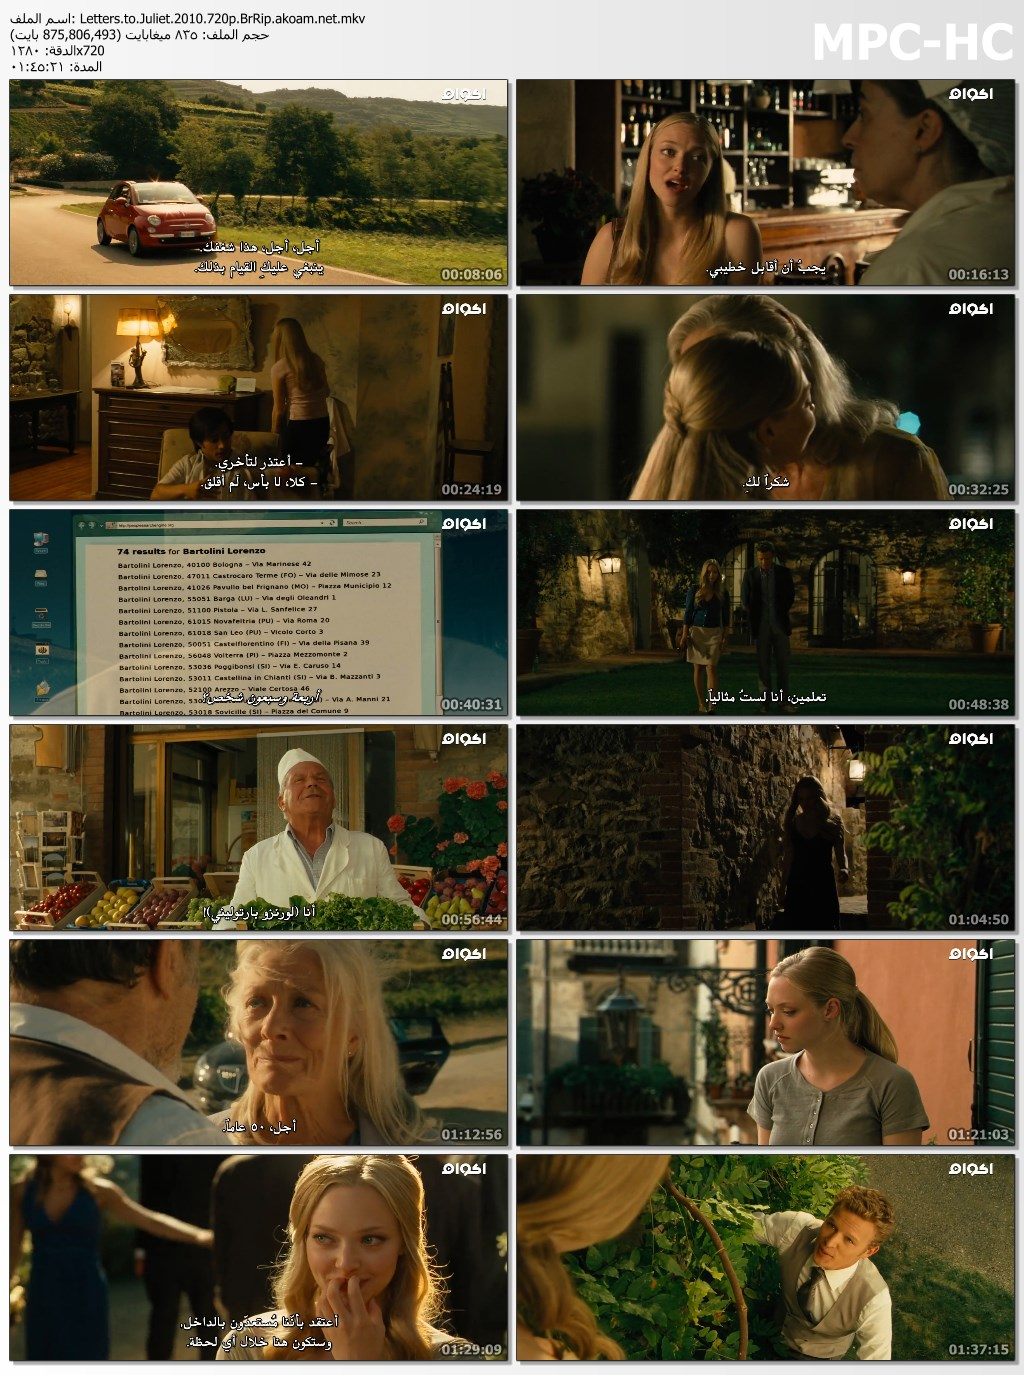 Letters to Juliet,Letters to Juliet 2010